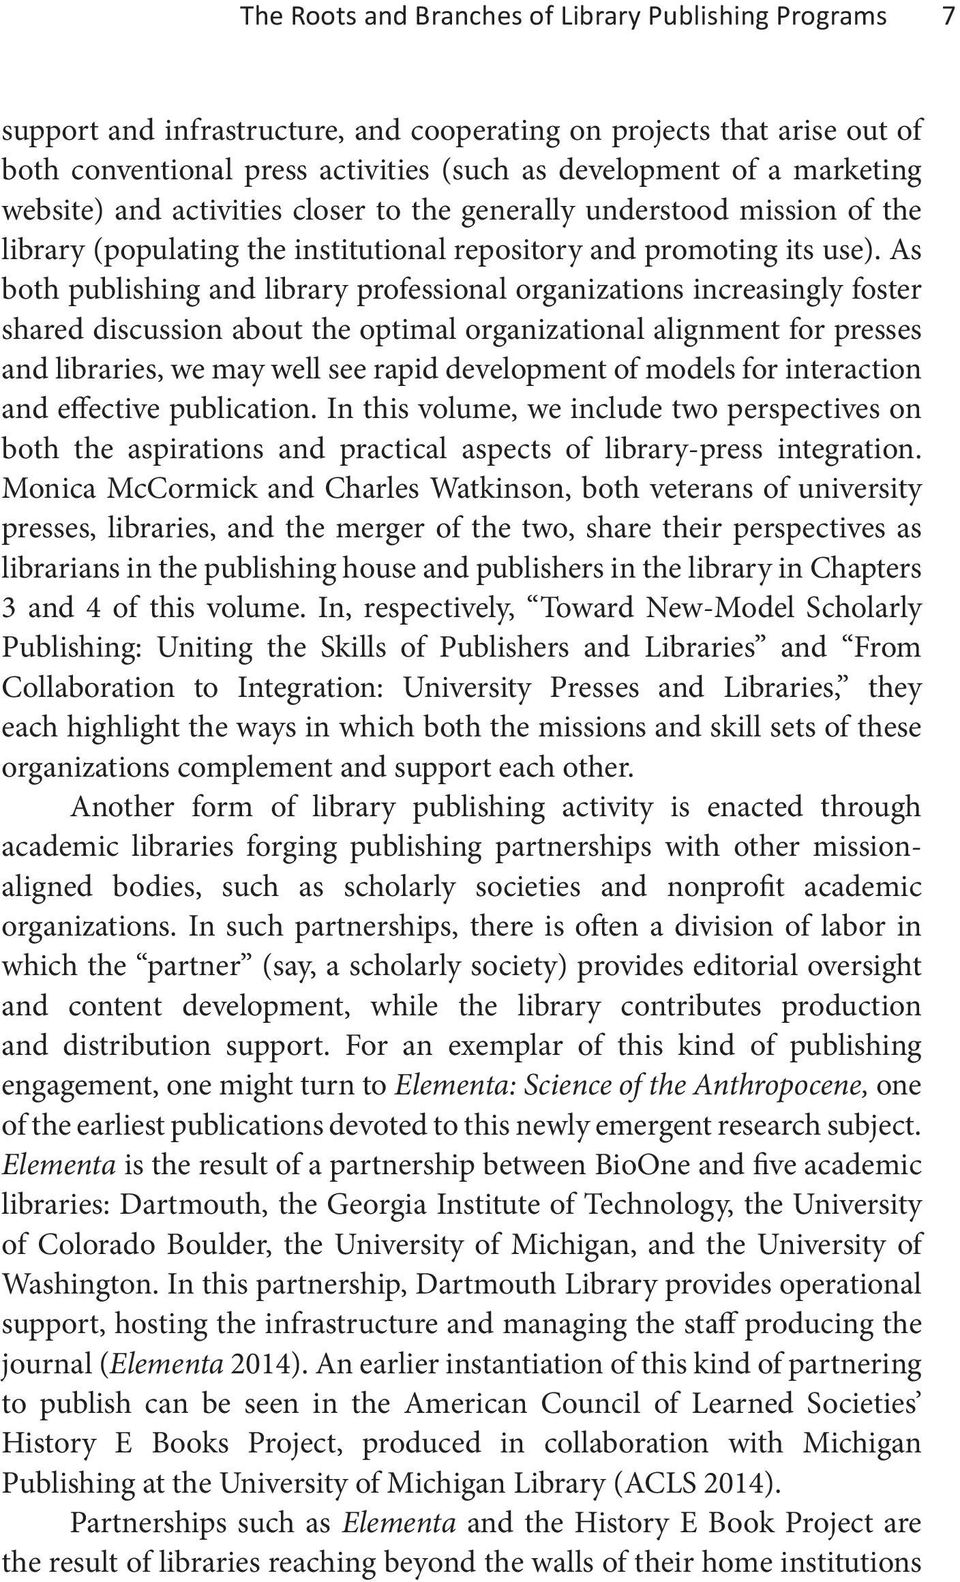 As both publishing and library professional organizations increasingly foster shared discussion about the optimal organizational alignment for presses and libraries, we may well see rapid development